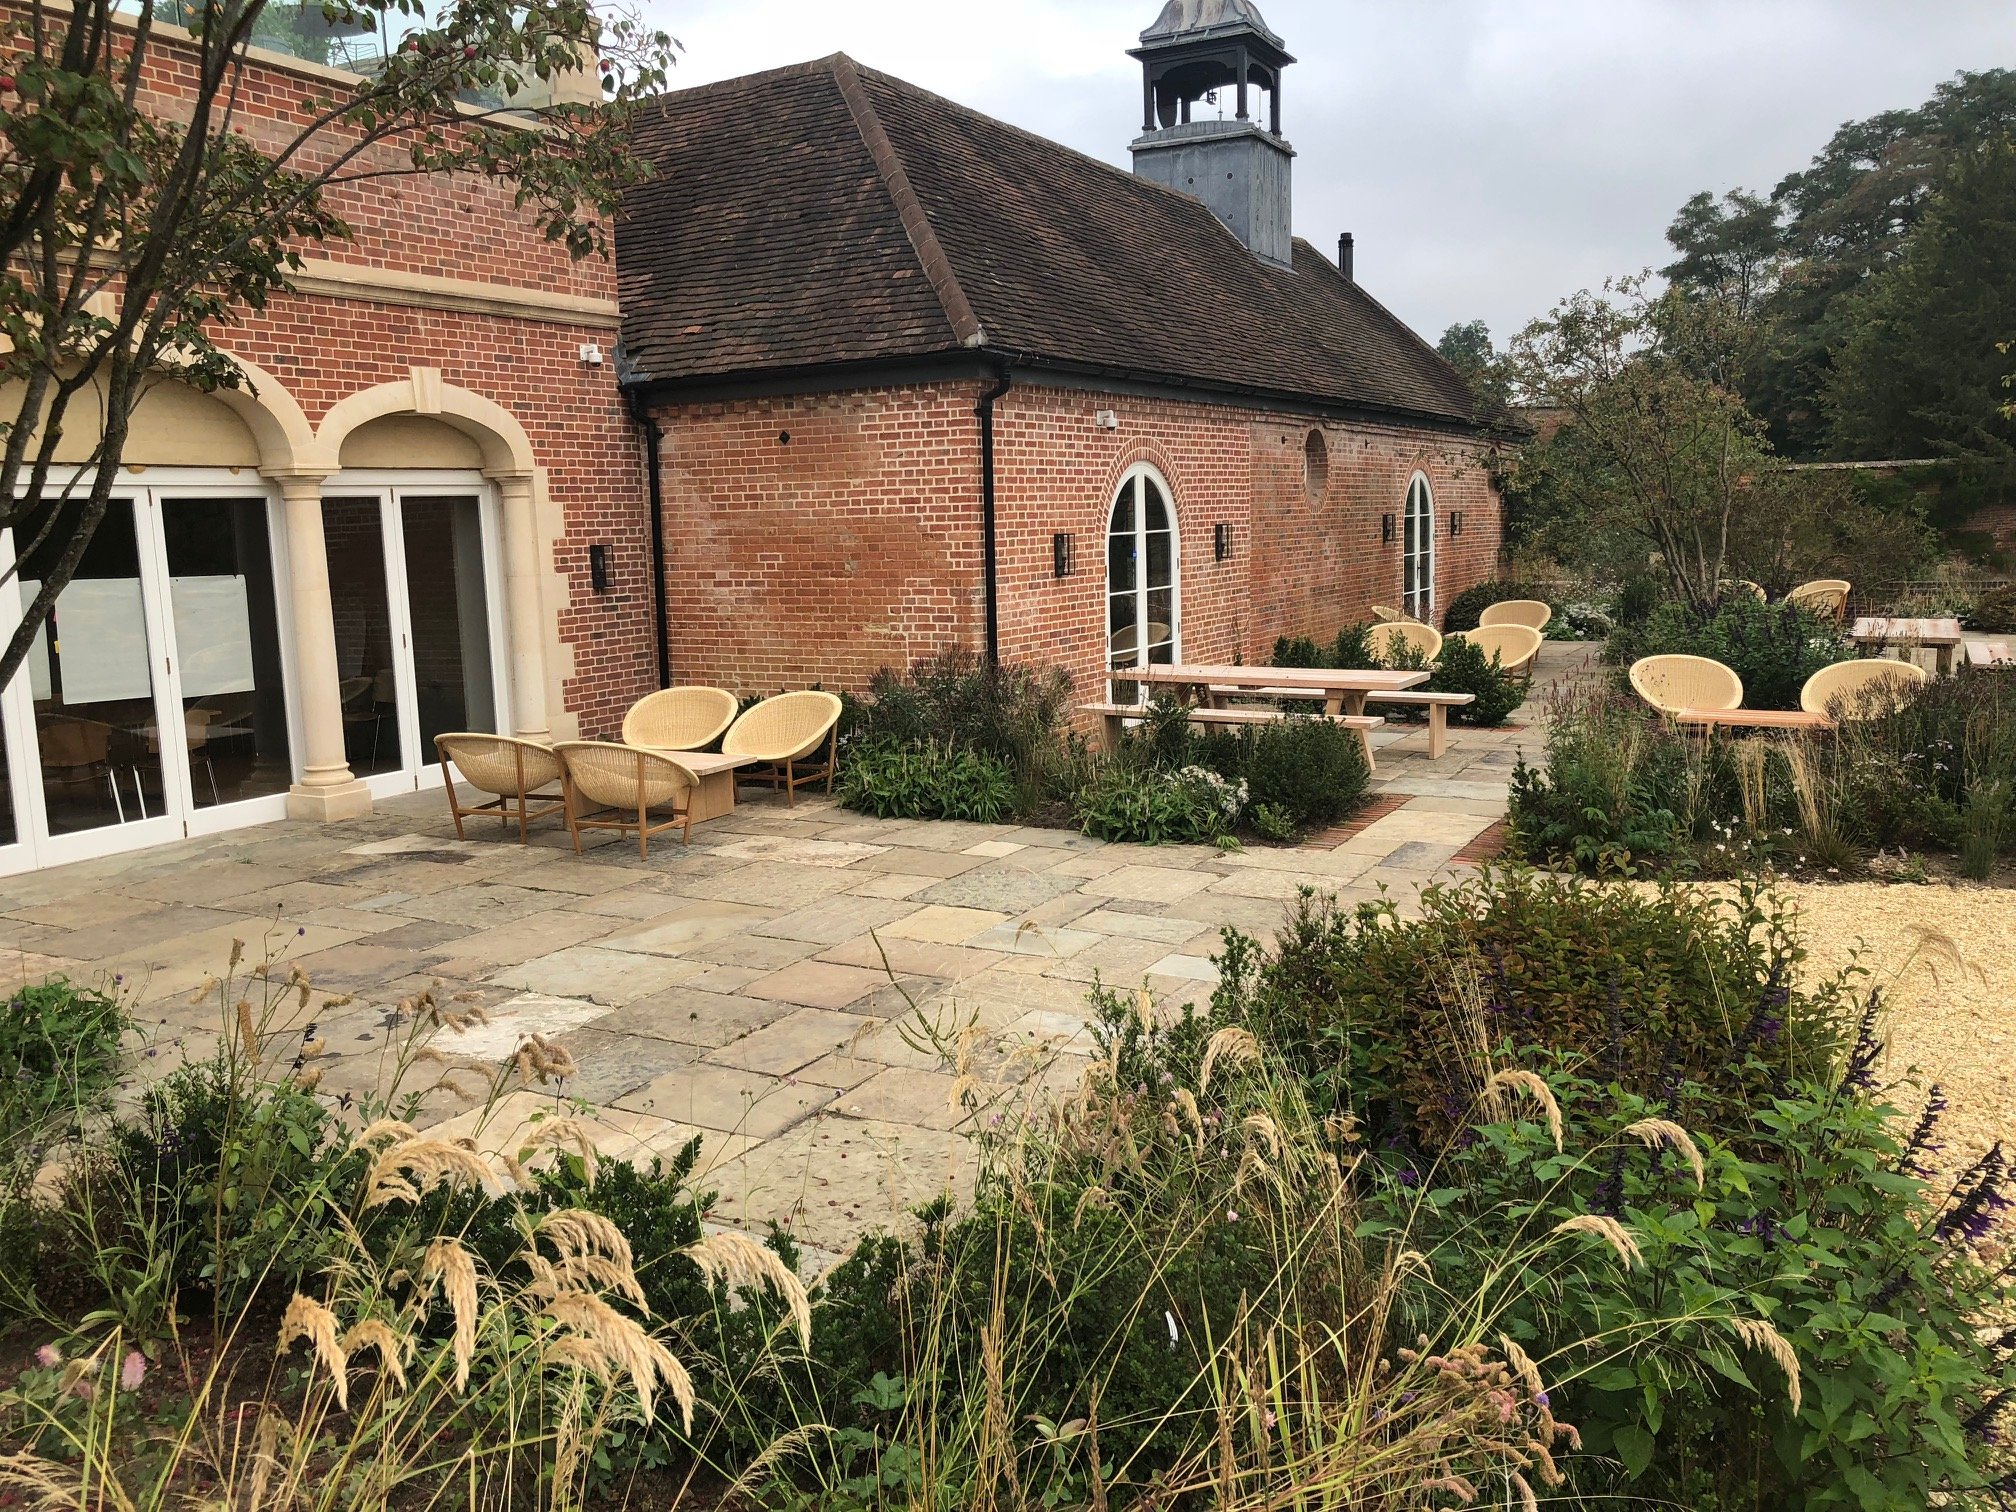 Image of Yorkstone Paving Slabs in a large garden. https://stoneuk.com/products/reclaimed-english-yorkstone-paving/